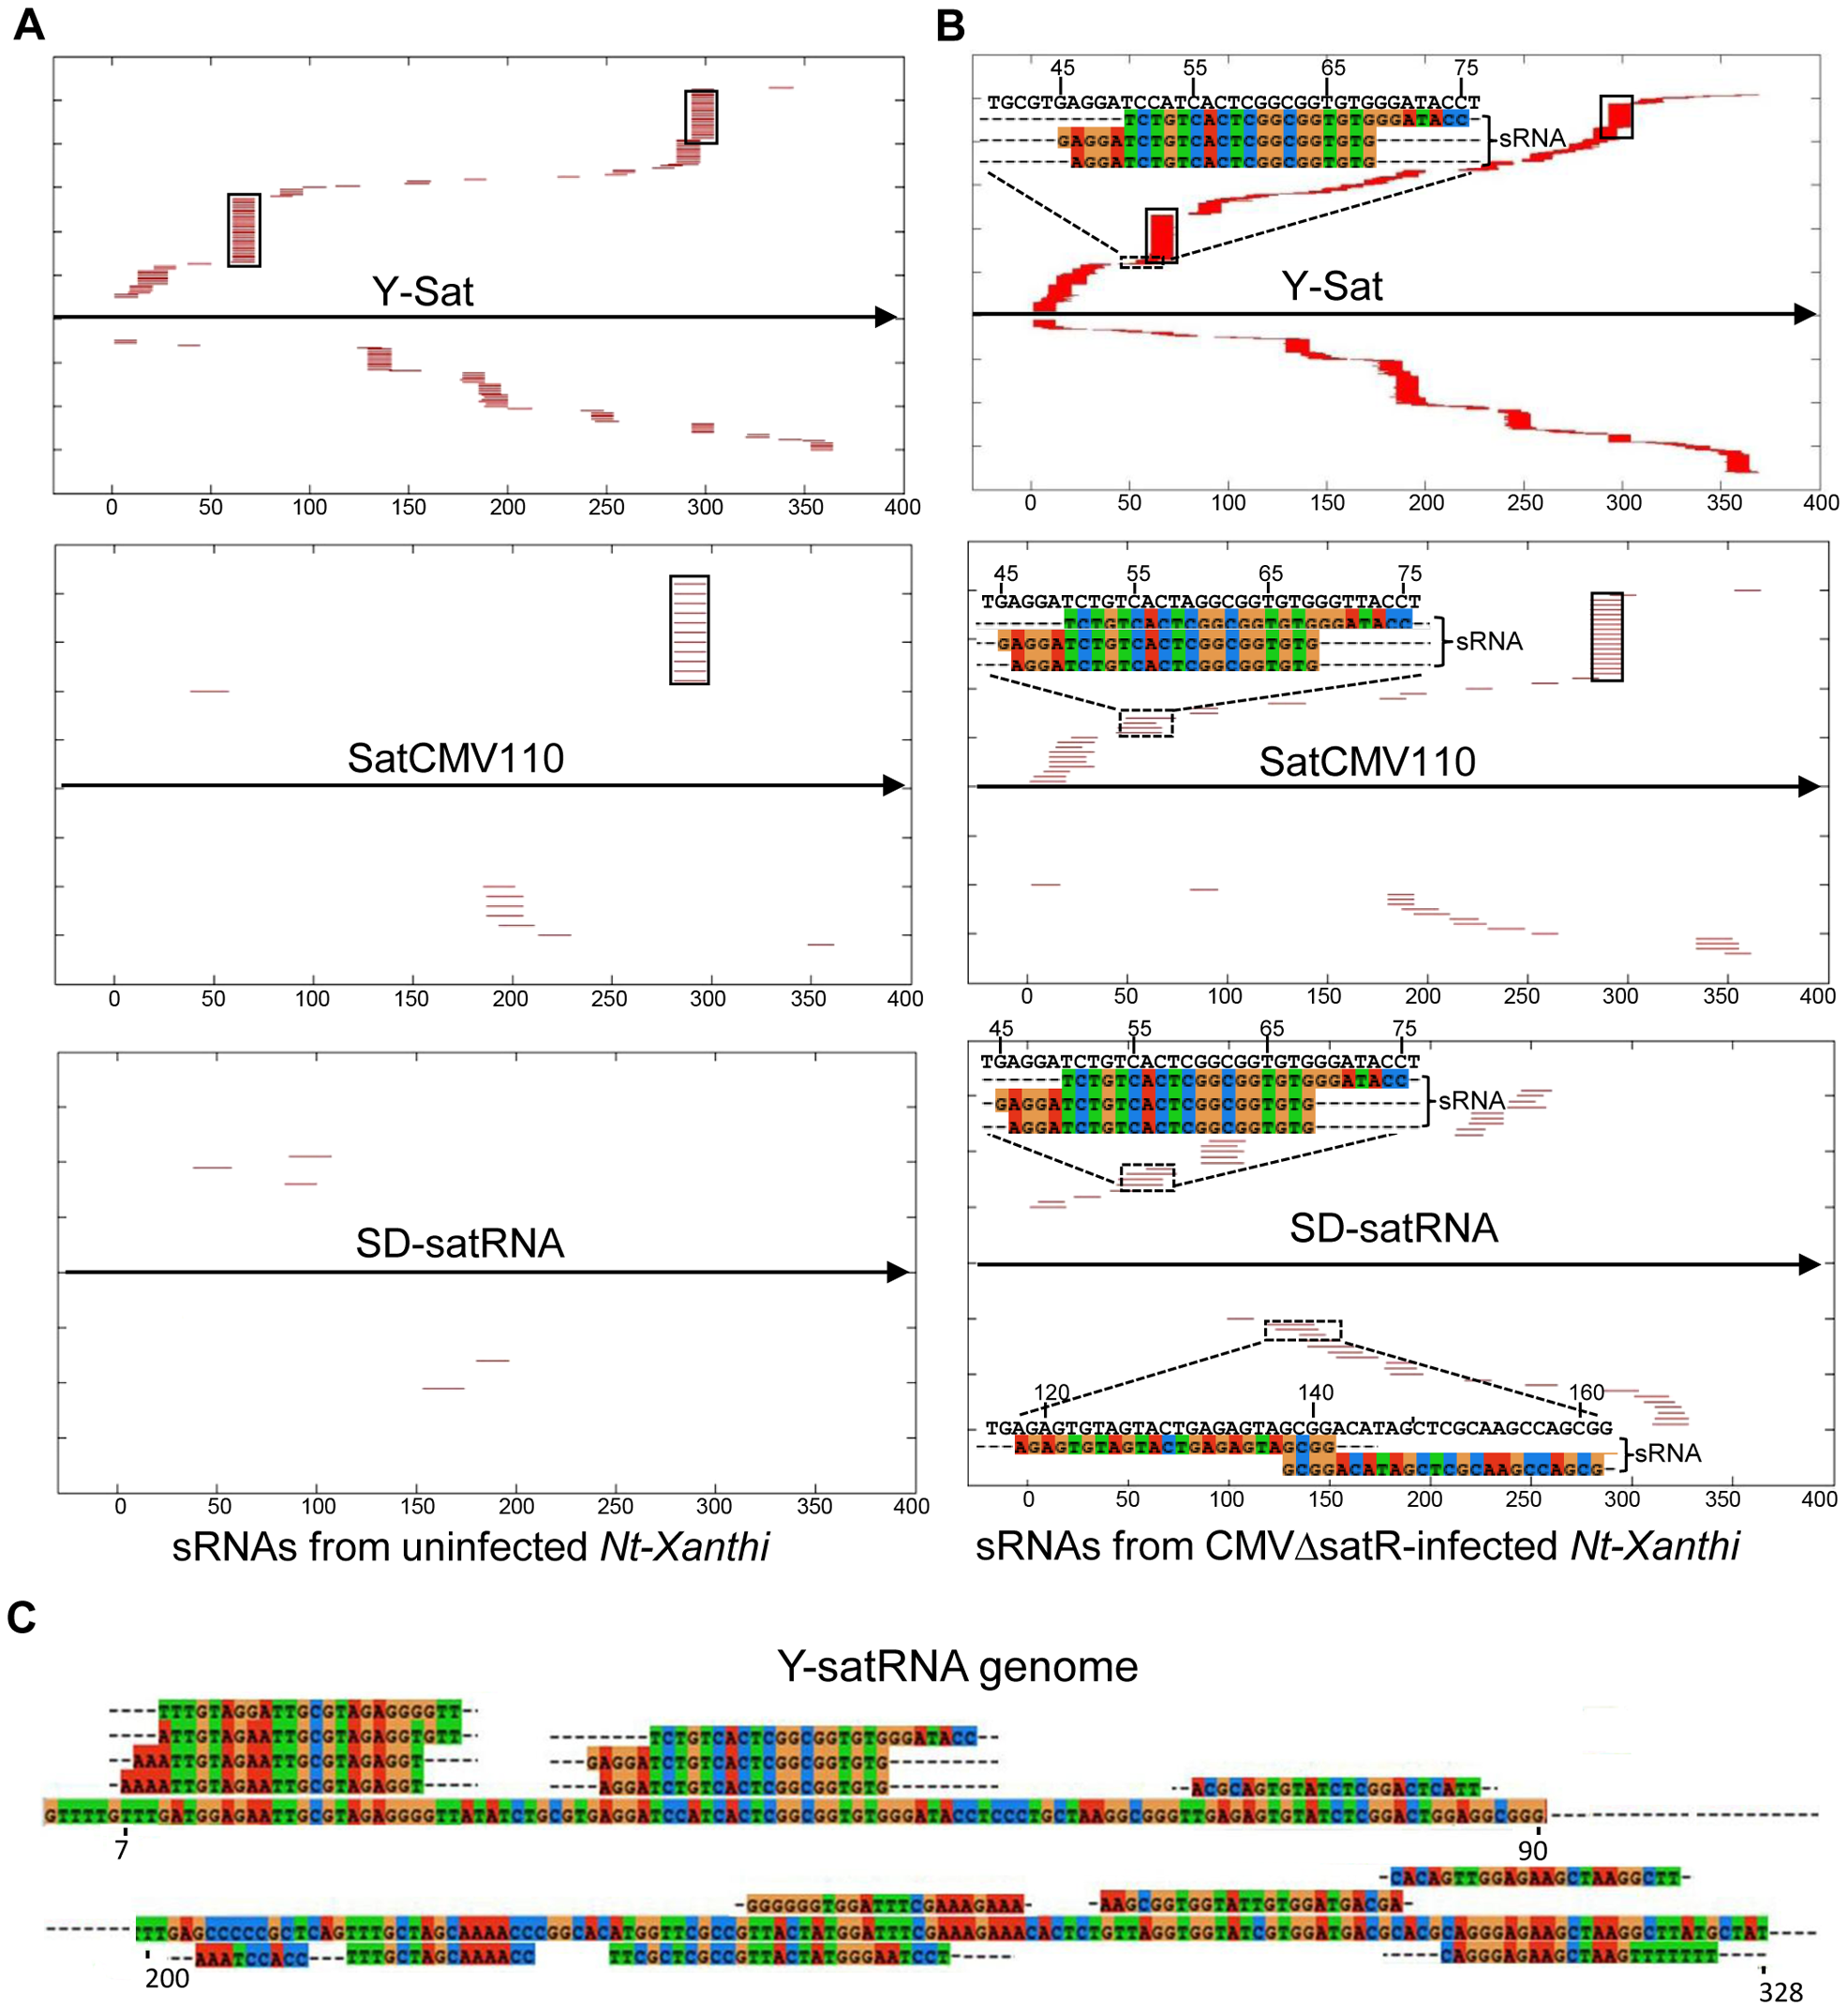 Alignment of sRNAs to three CMV satRNA genome sequences at the E-value of 1e<sup>−3</sup> (A and B) and 1e<sup>−5</sup> (C).